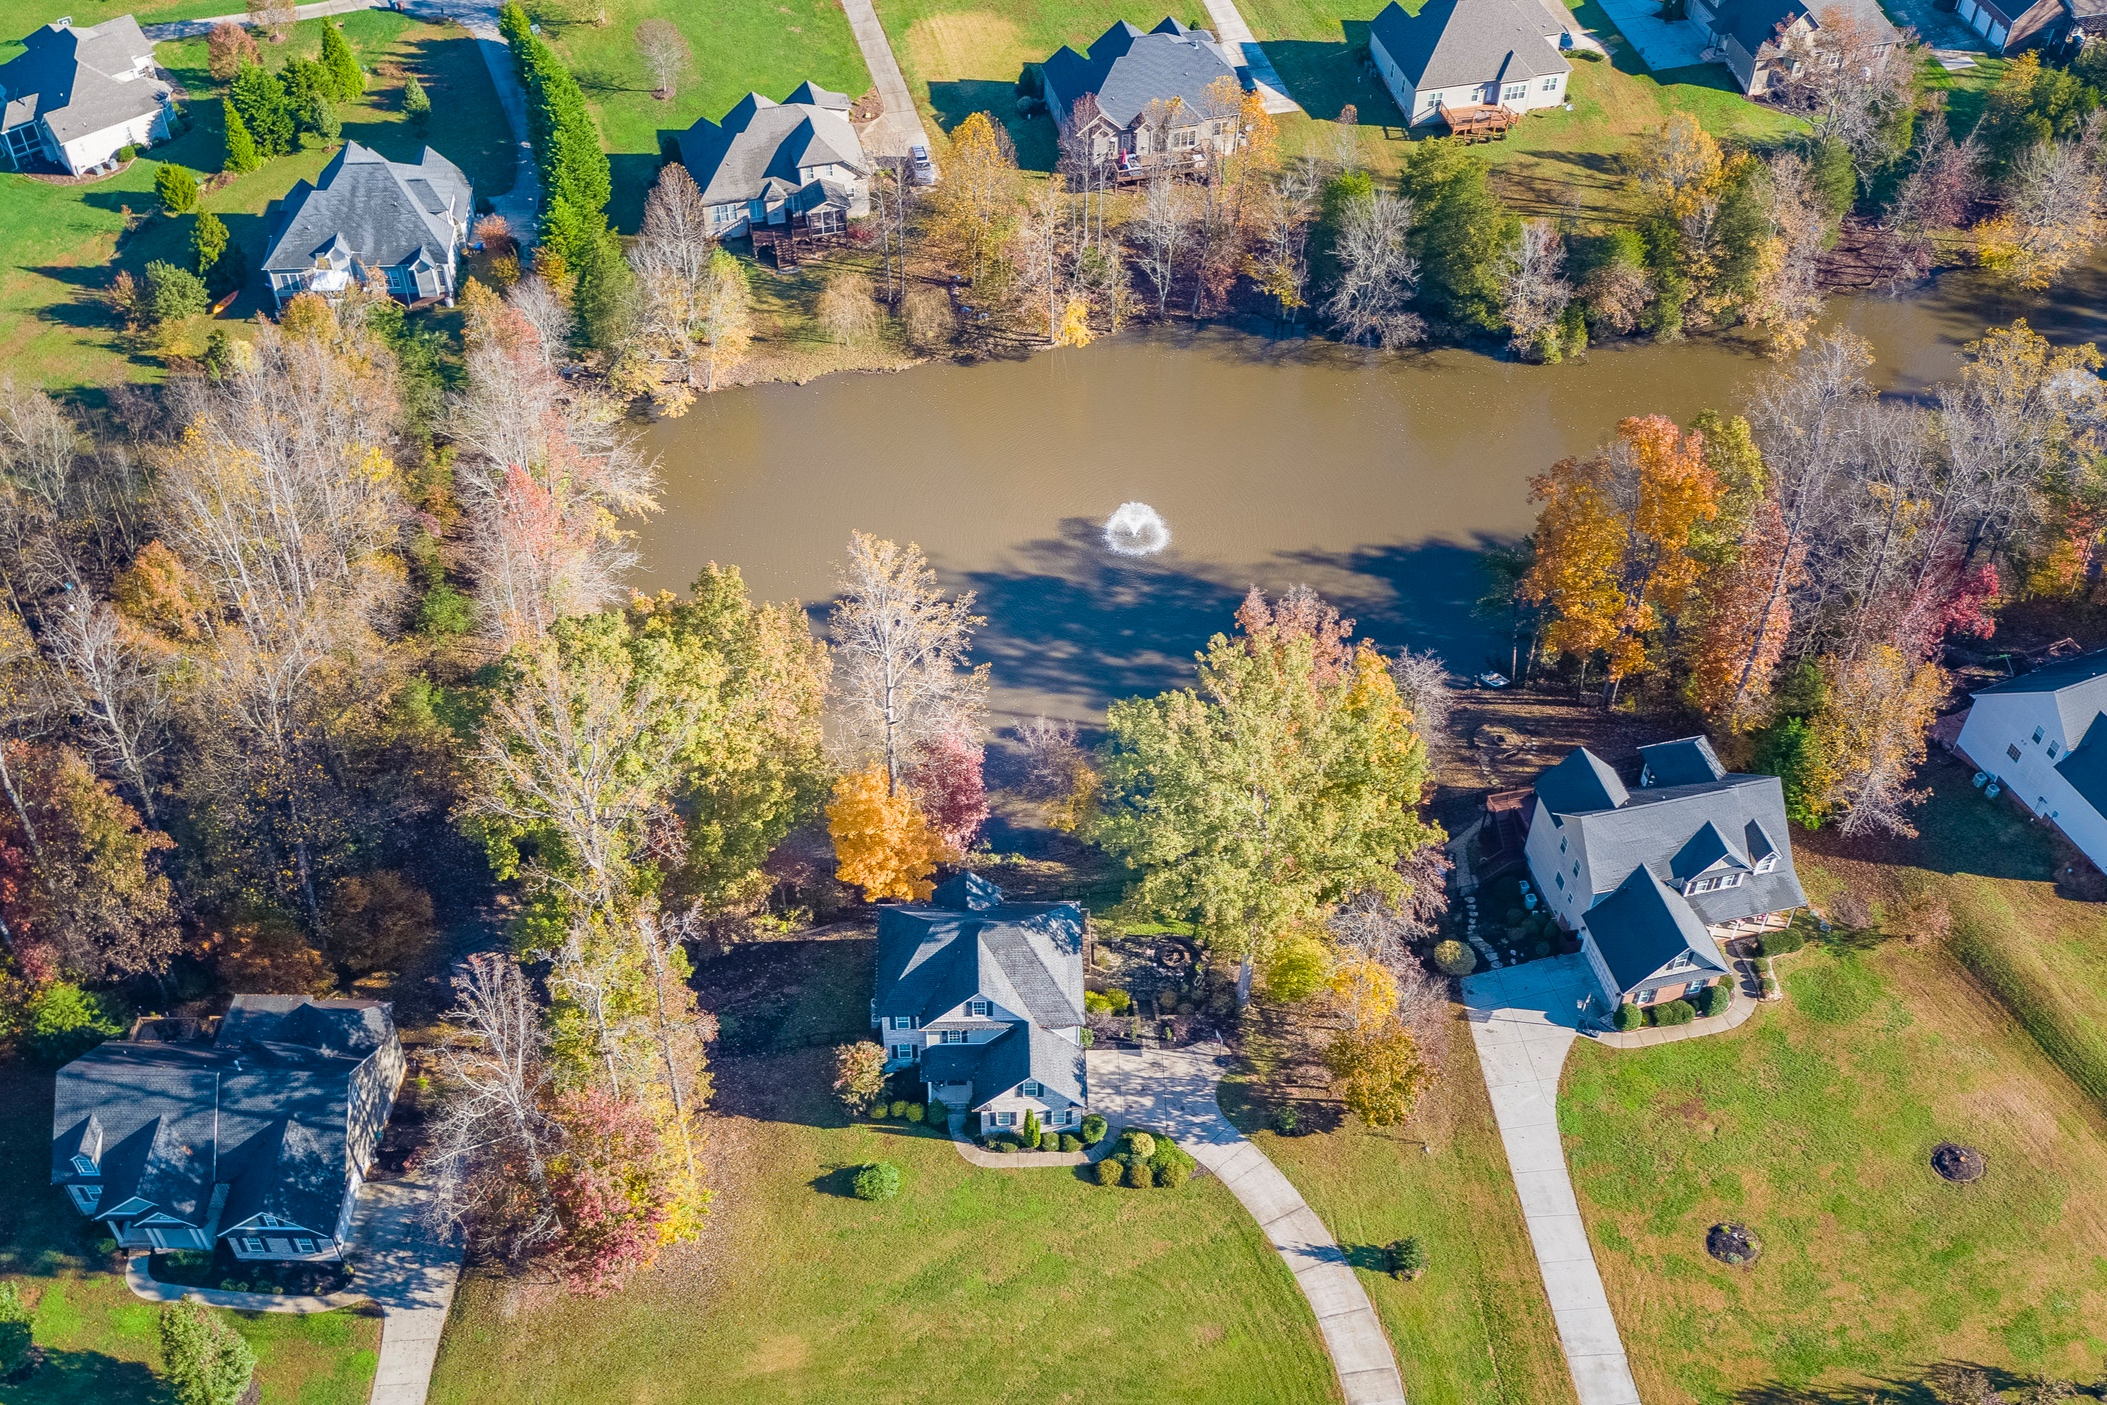 Drone Photography - You will receive 8-10 drone/aerial images that will cover all angles of the property as well as nearby amenities.